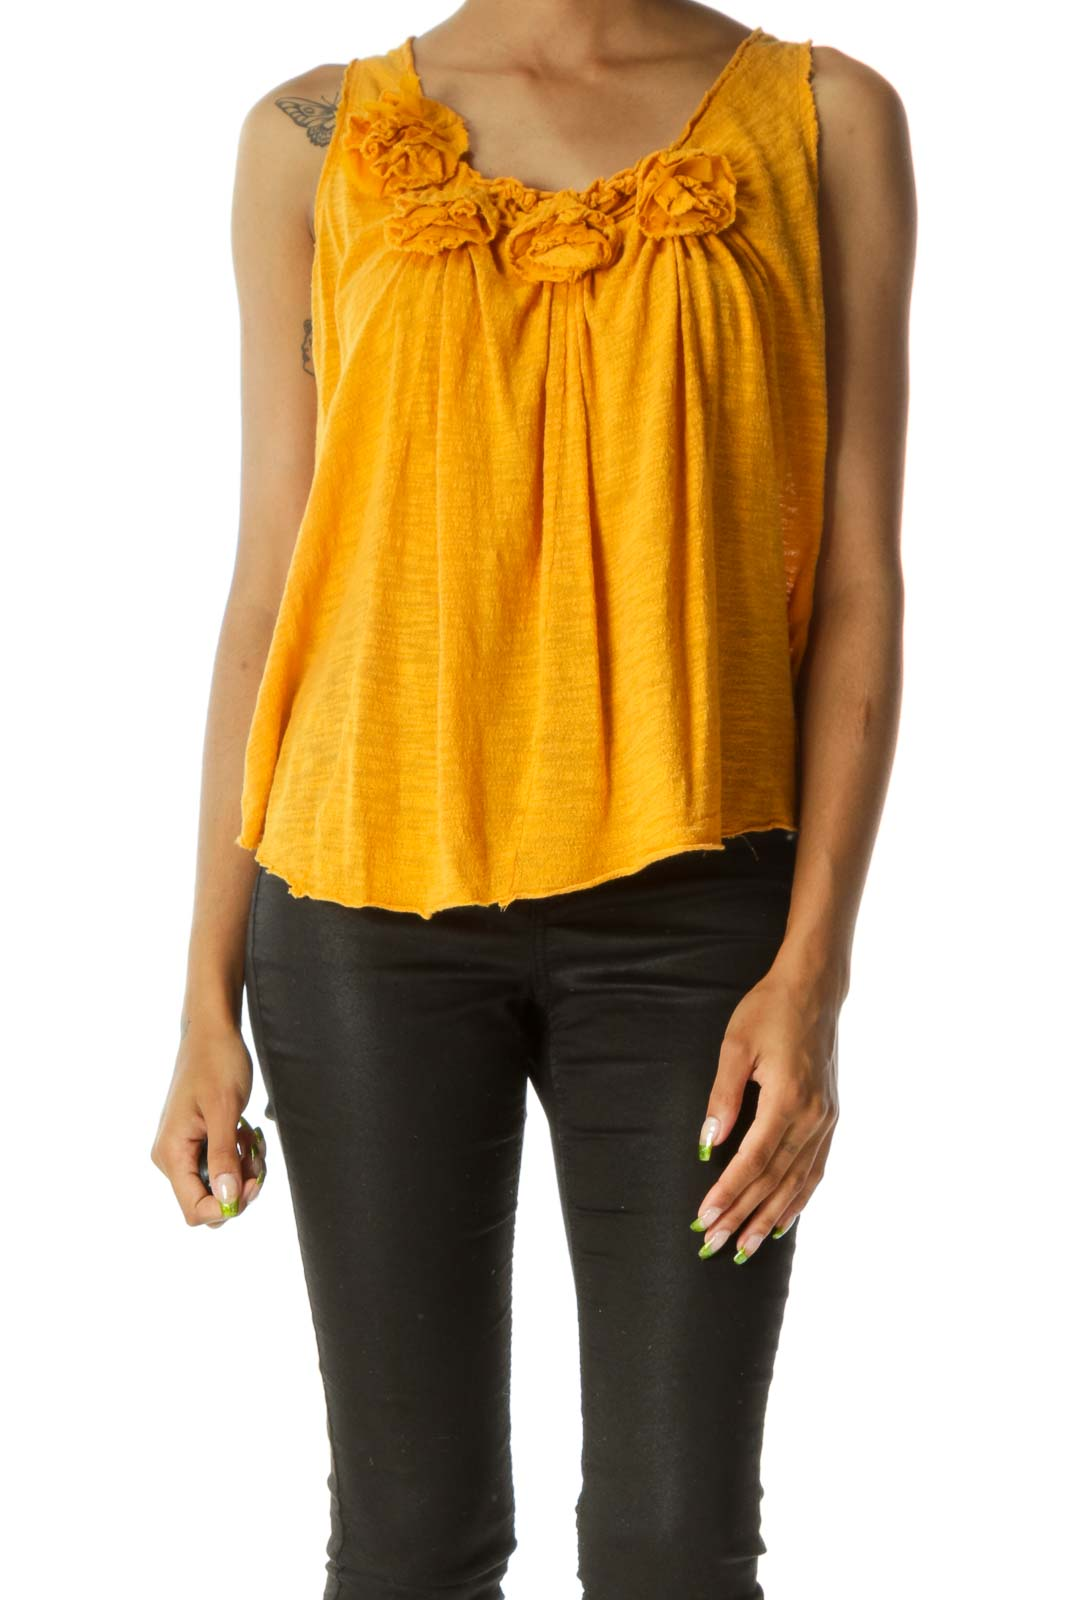 Old-Gold-Yellow 100% Cotton Flower-Appliques Knit Tank